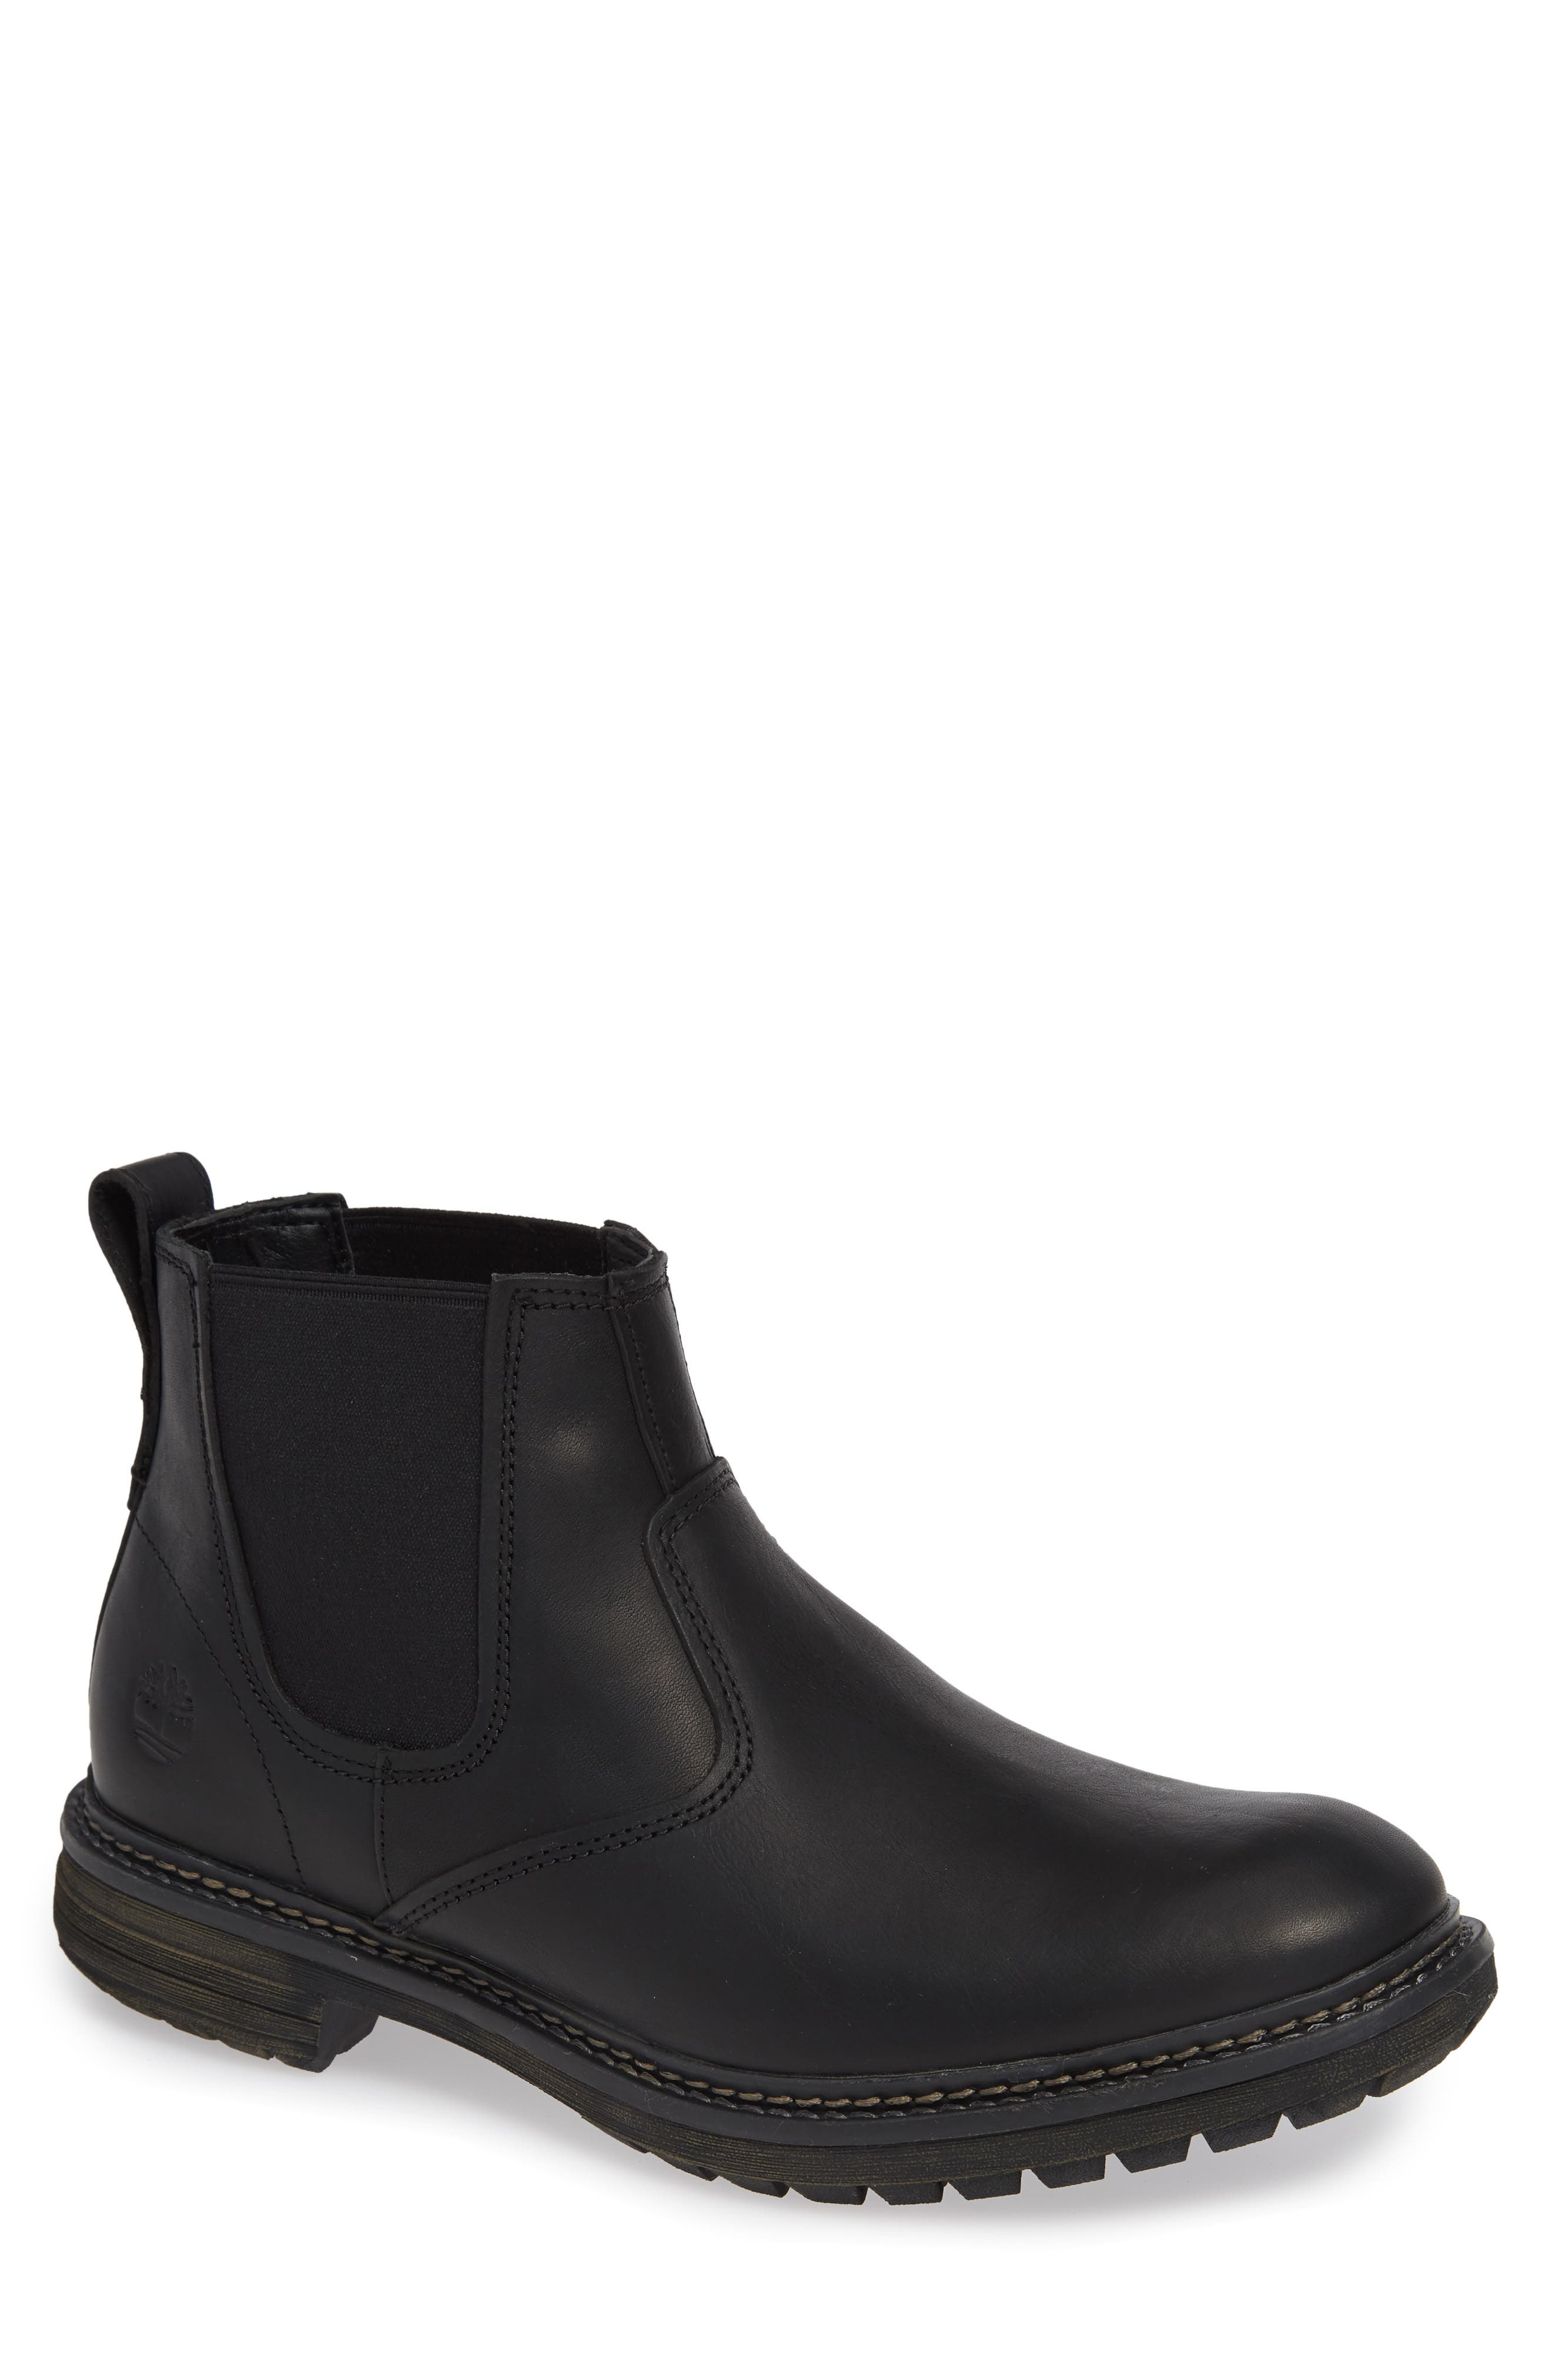 Logan Bay Water Resistant Chelsea Boot,                         Main,                         color, BLACK LEATHER